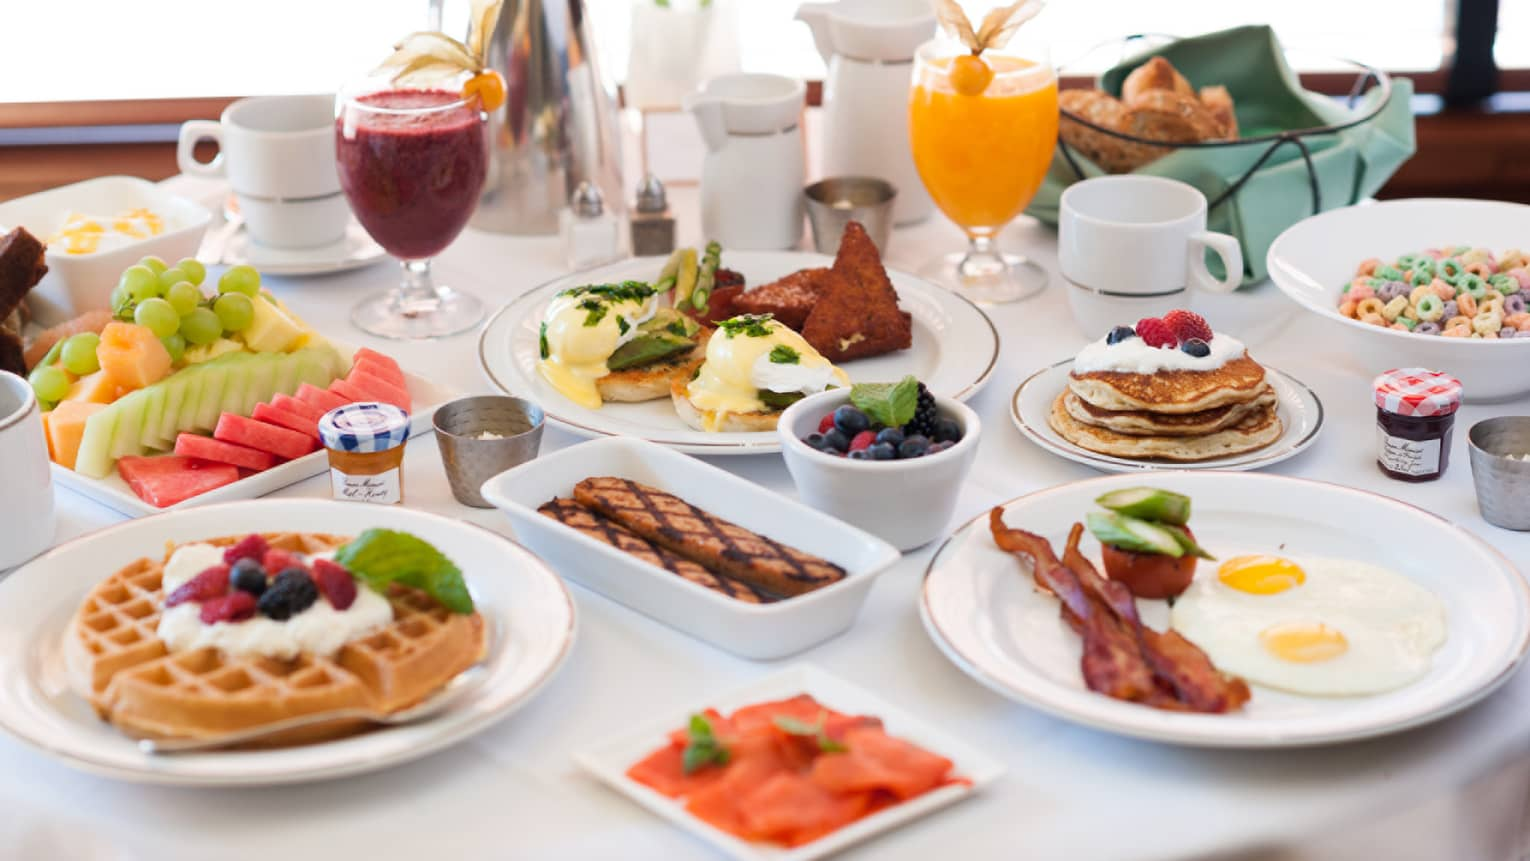 Brunch spread over white table, fresh waffles, bacon, eggs benedict, fruit platters